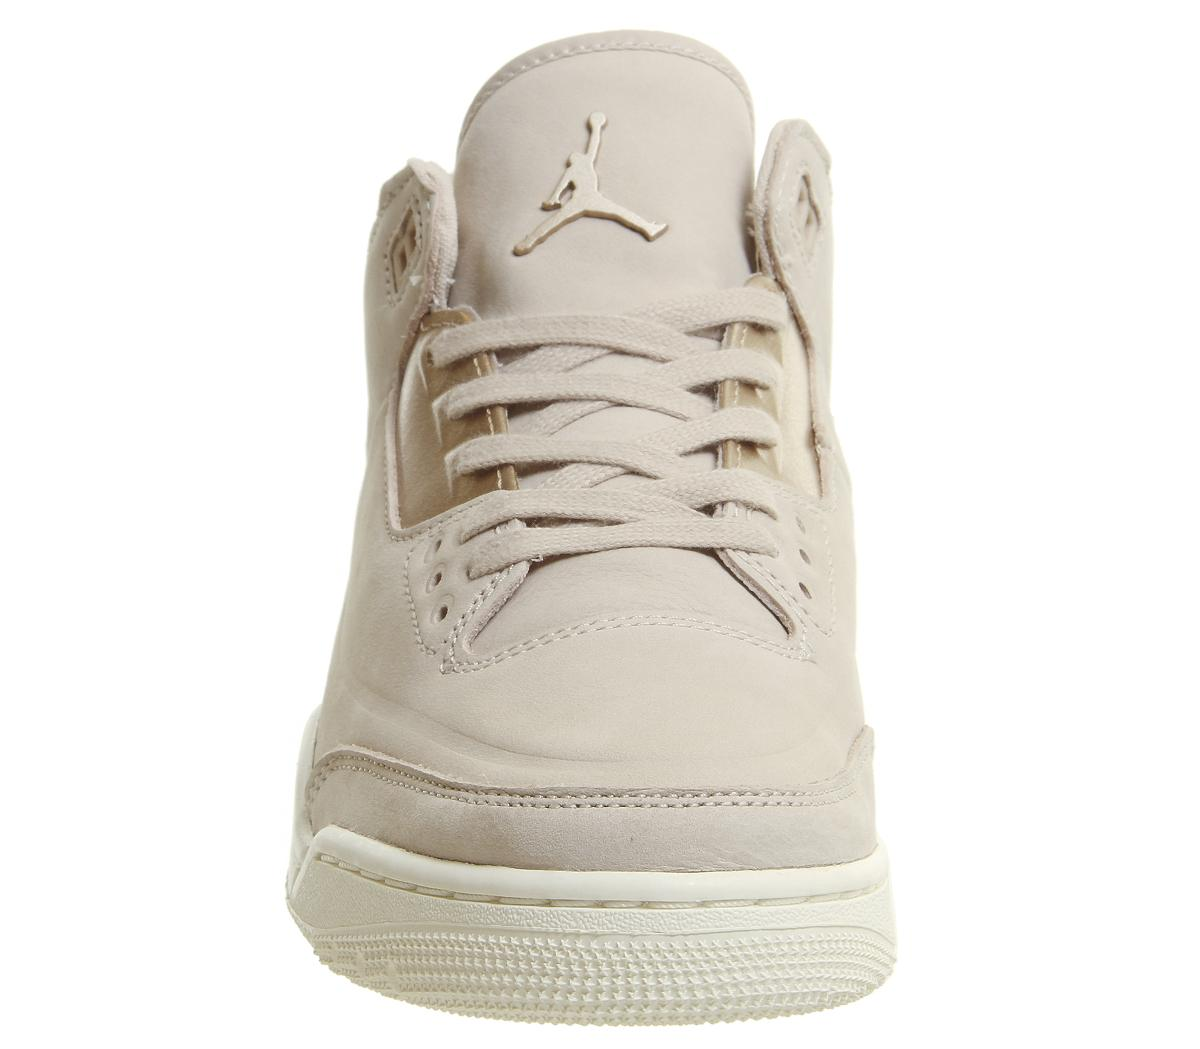 Nike Suede 3 Trainers in Natural